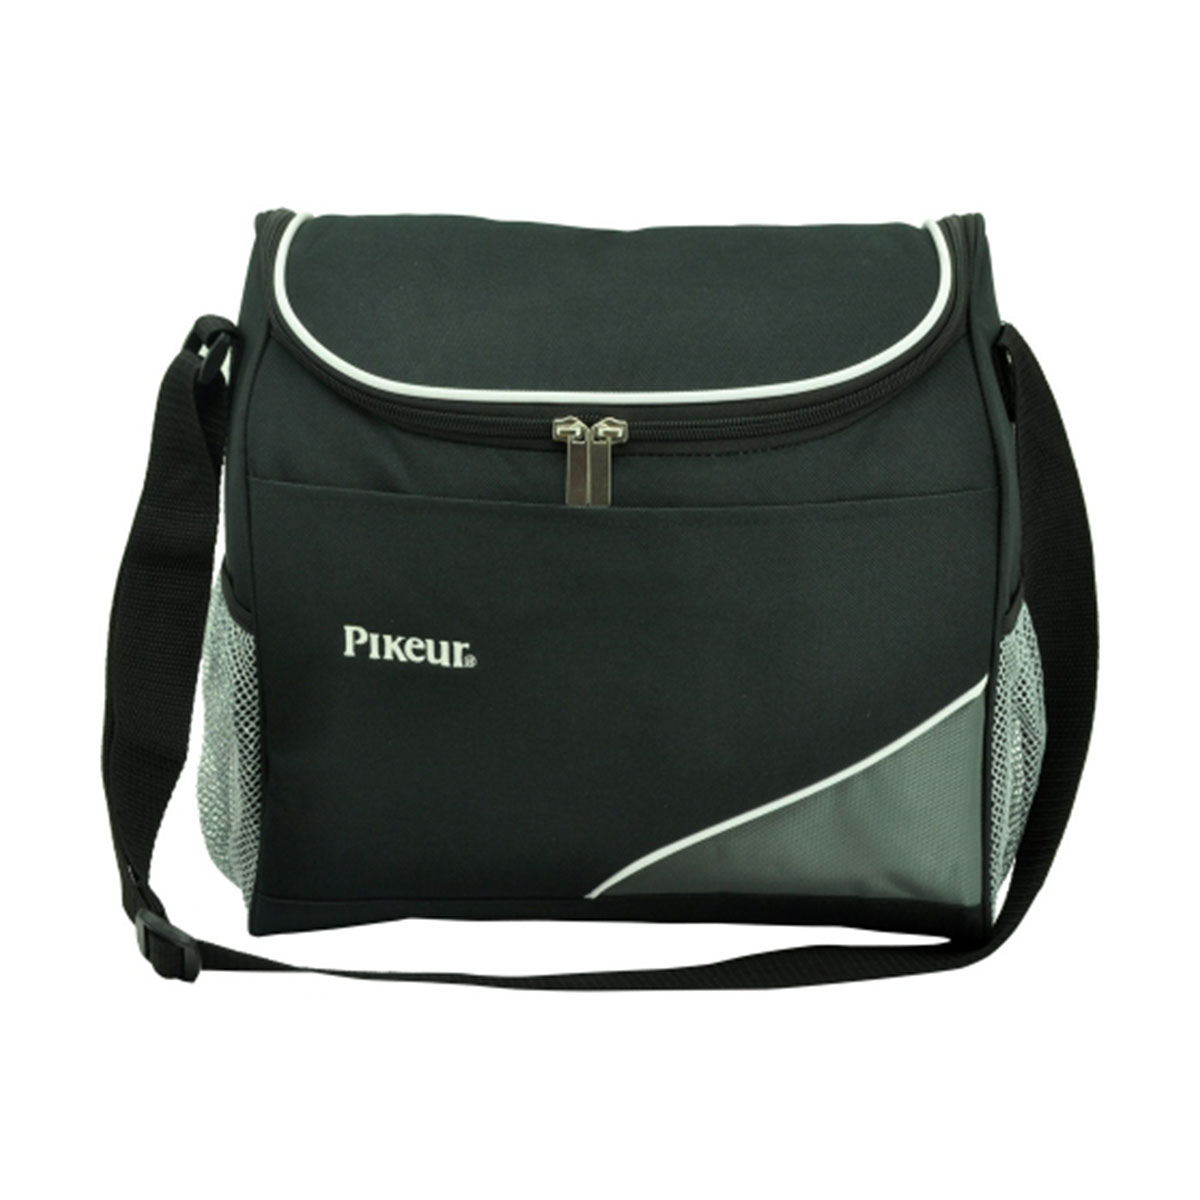 Caddy cooler bag-Black / White / Charcoal